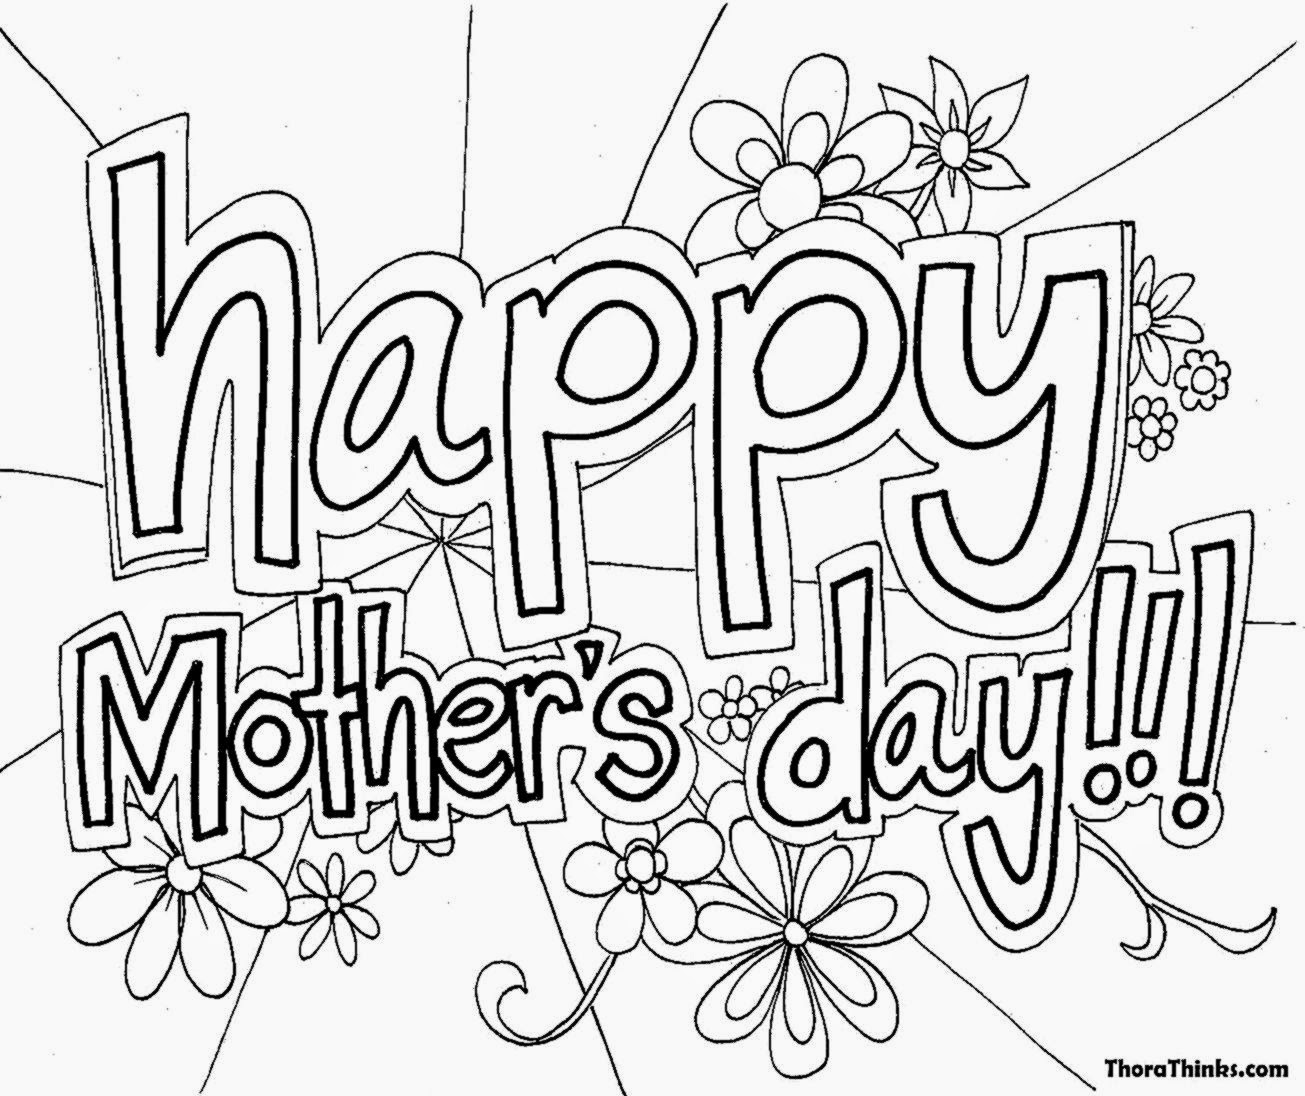 Mothers day coloring pictures free coloring pictures for Happy mothers day coloring page